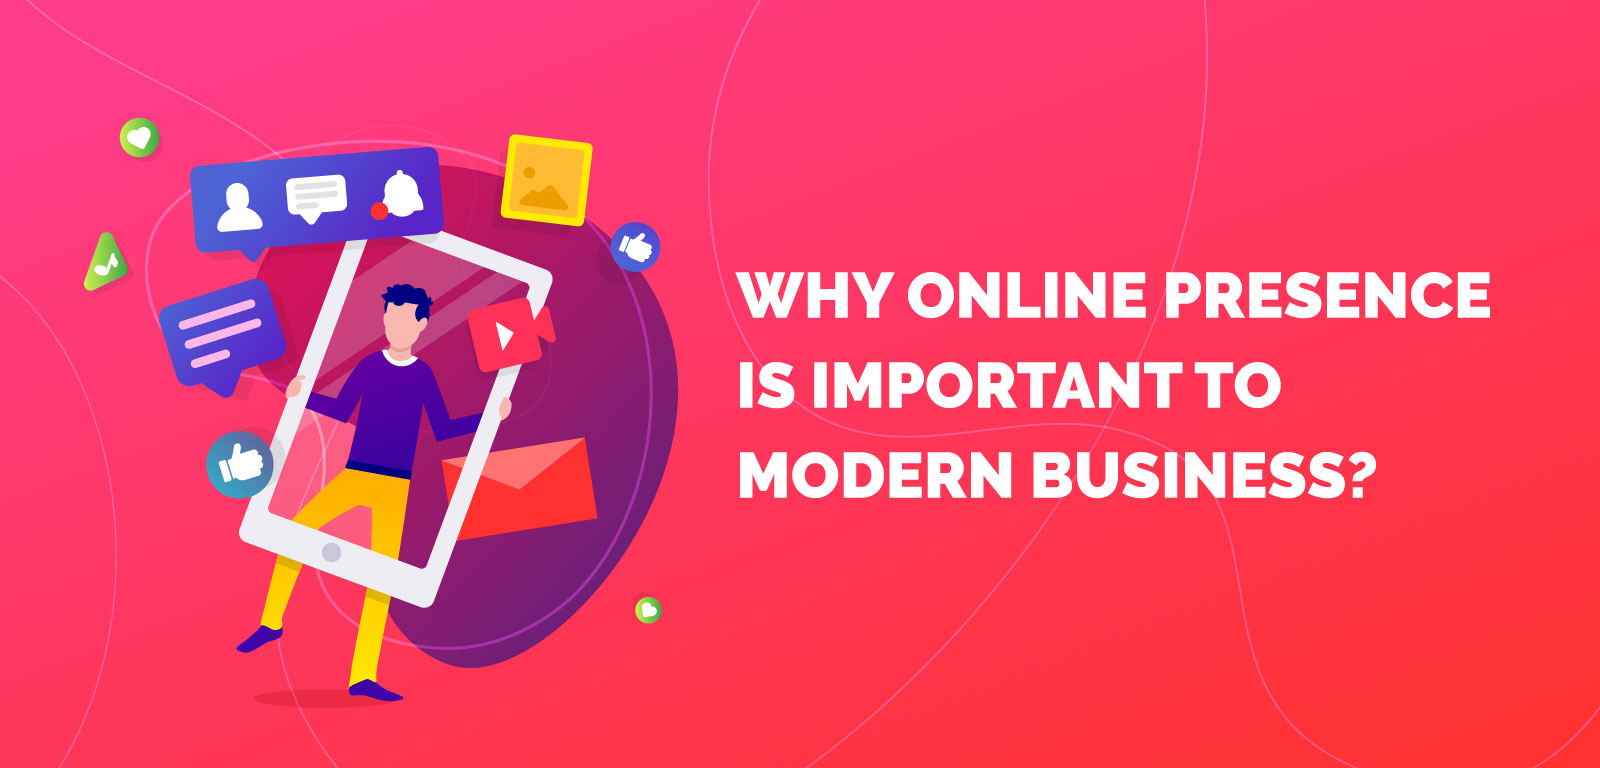 Why online presence is important to modern business?